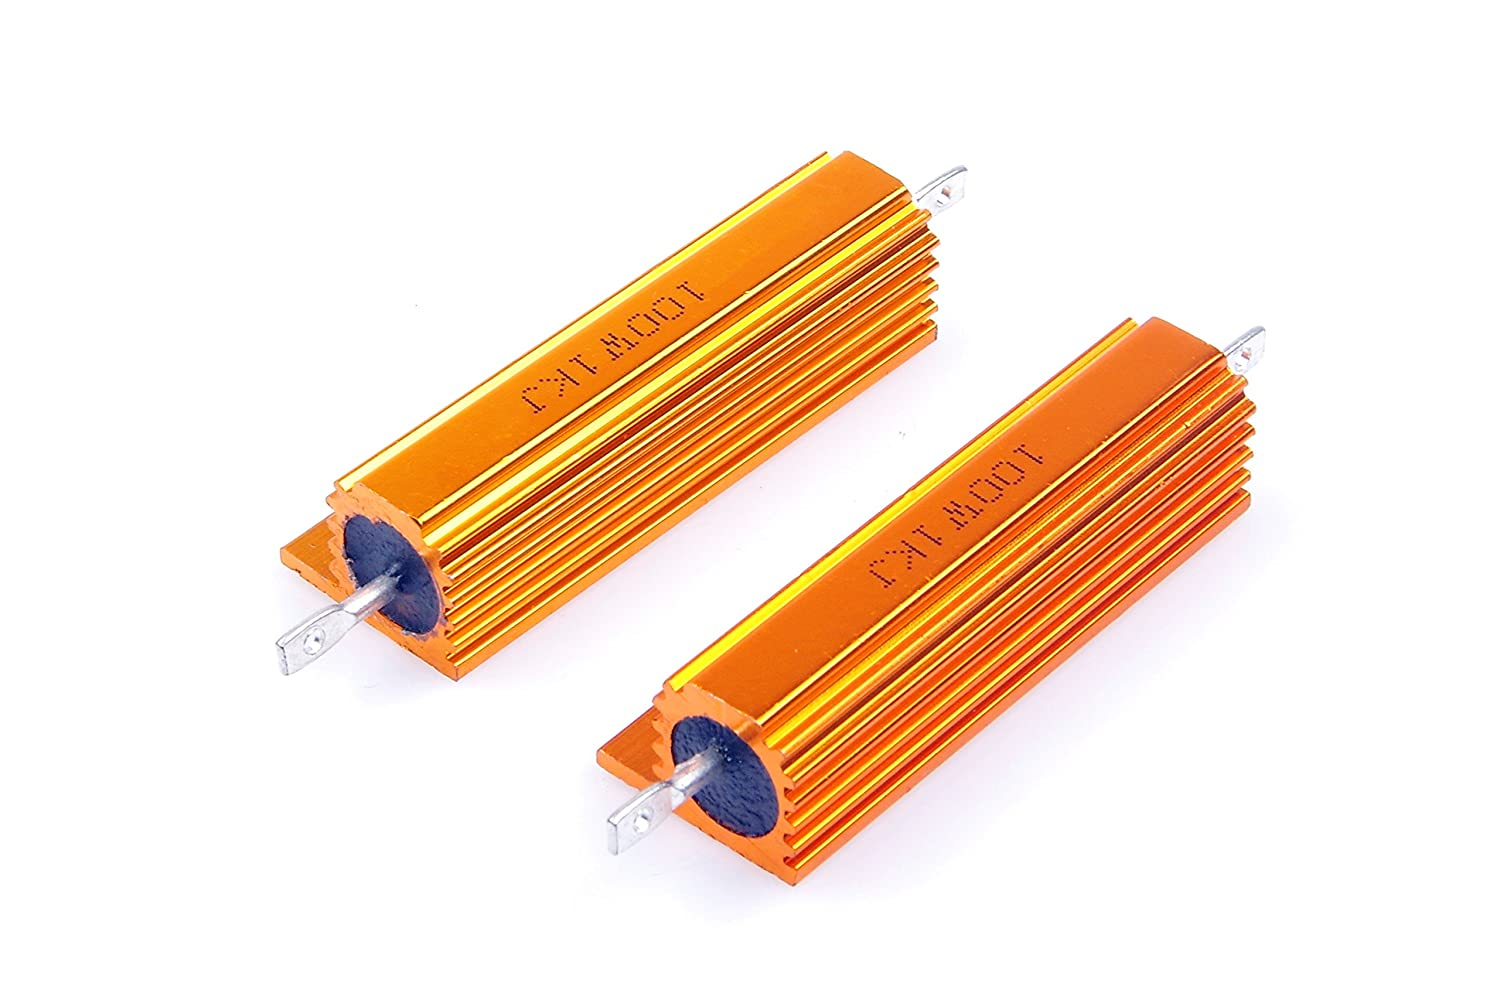 Servo Industry Industrial Control 2-Pcs LED lights,Frequency Divider LM YN 100 Watt 1K Ohm 5/% Wirewound Resistor Electronic Aluminium Shell Resistors Gold Suitable For Inverter